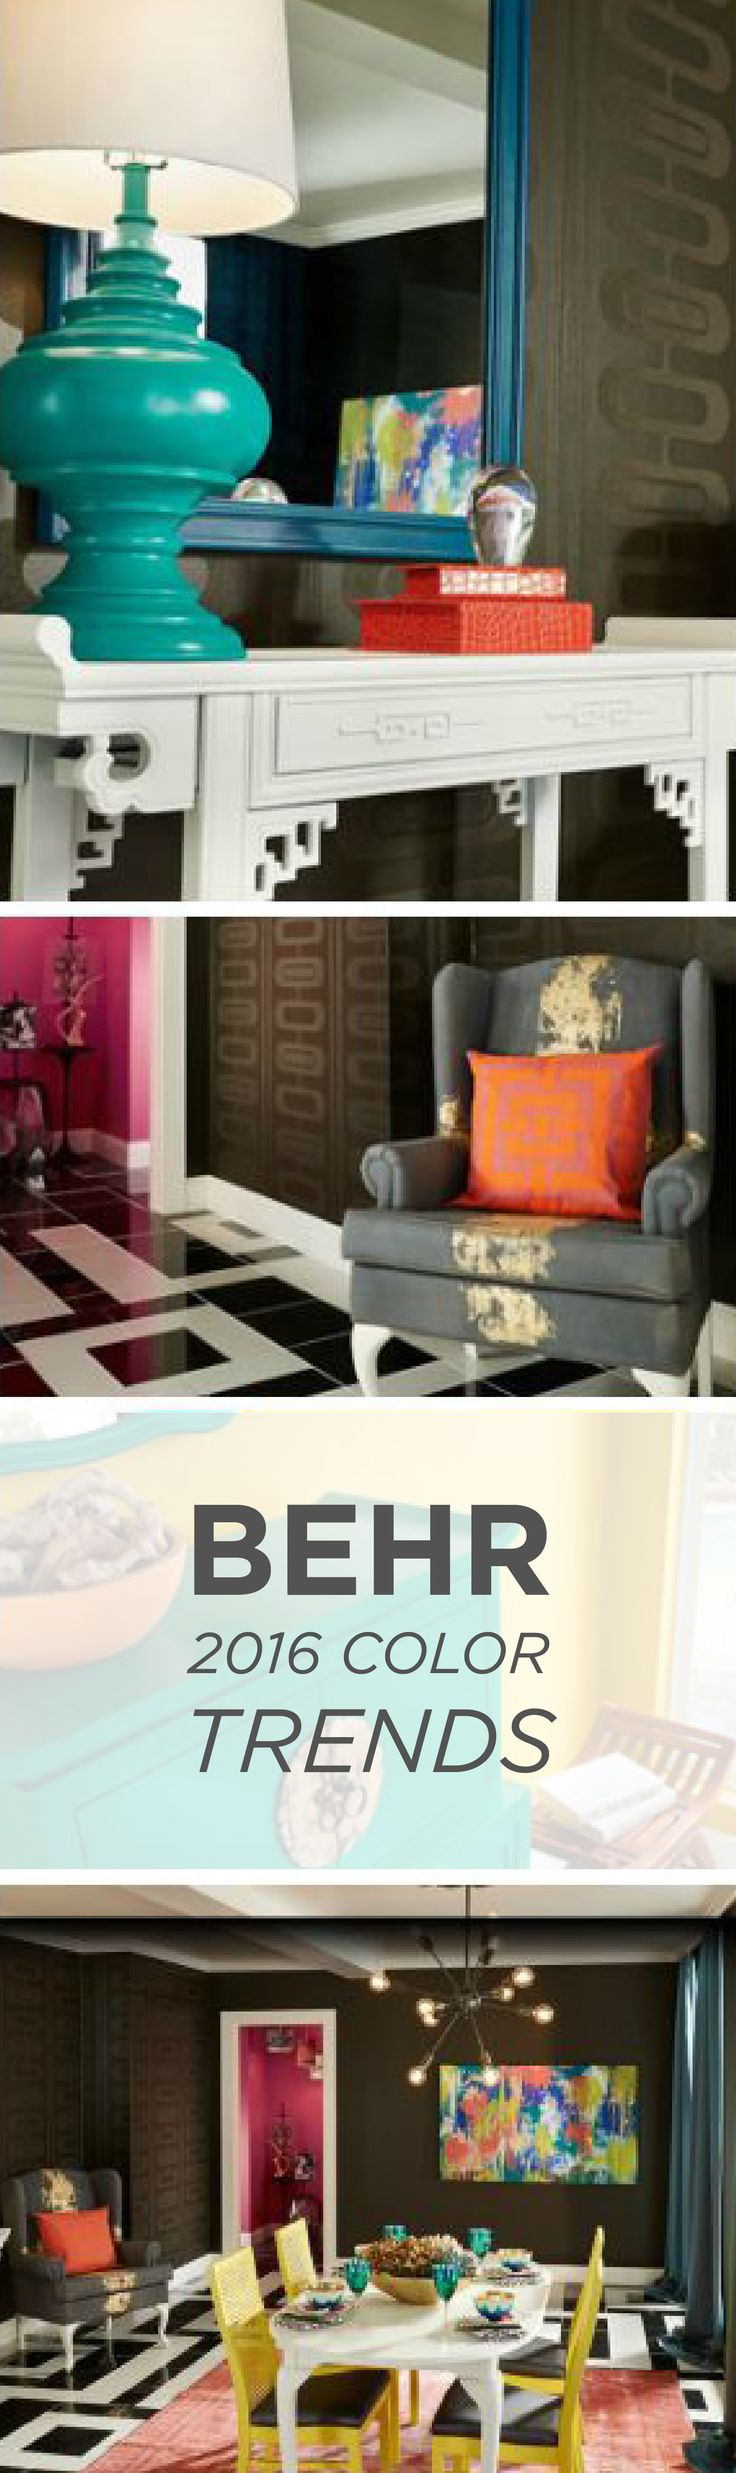 Living Room Color Trends 17 Best Images About Behr 2016 Color Trends On Pinterest Paint